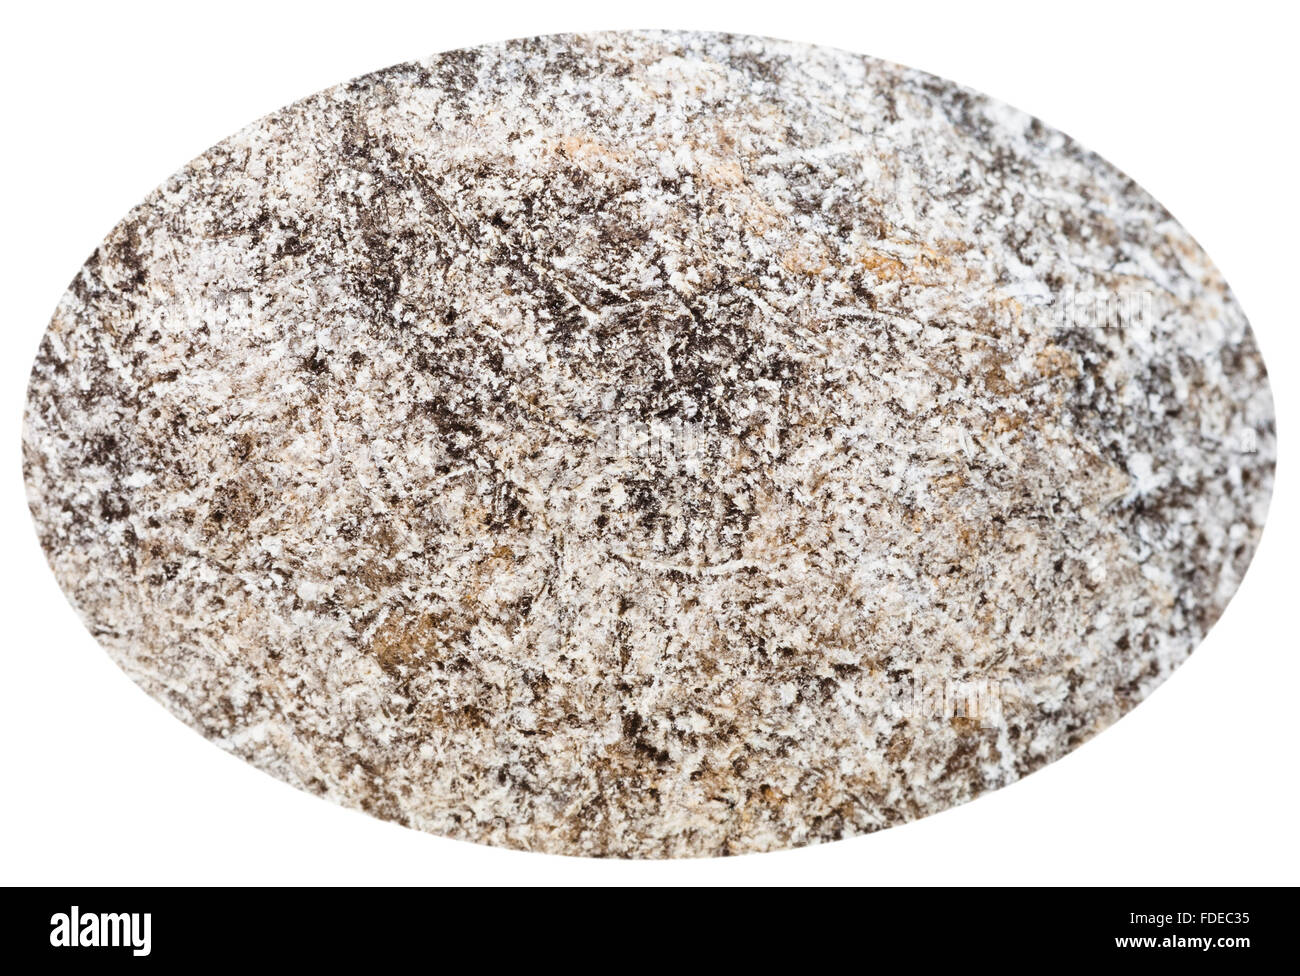 cabochon from anhydrite natural mineral gem stone isolated on white background - Stock Image